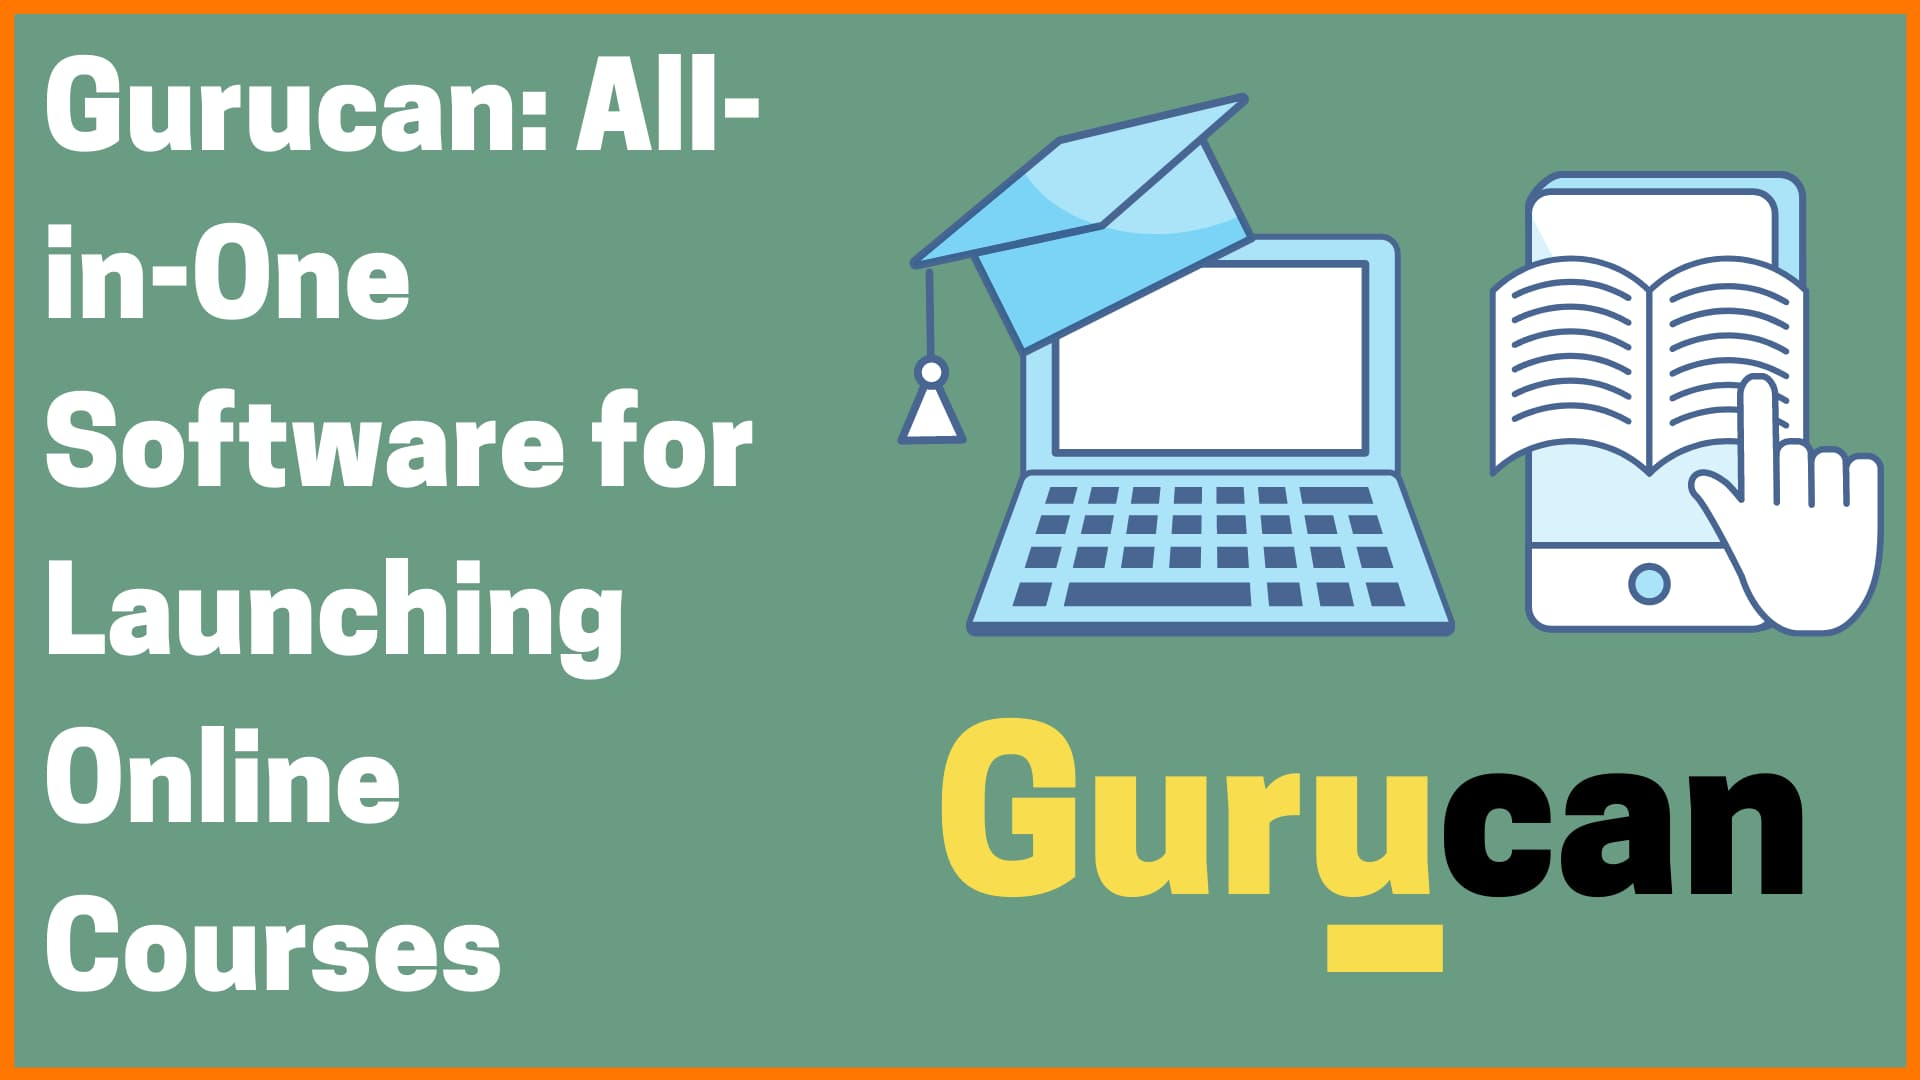 Gurucan: All-in-one Platform for Launching Your Online Courses